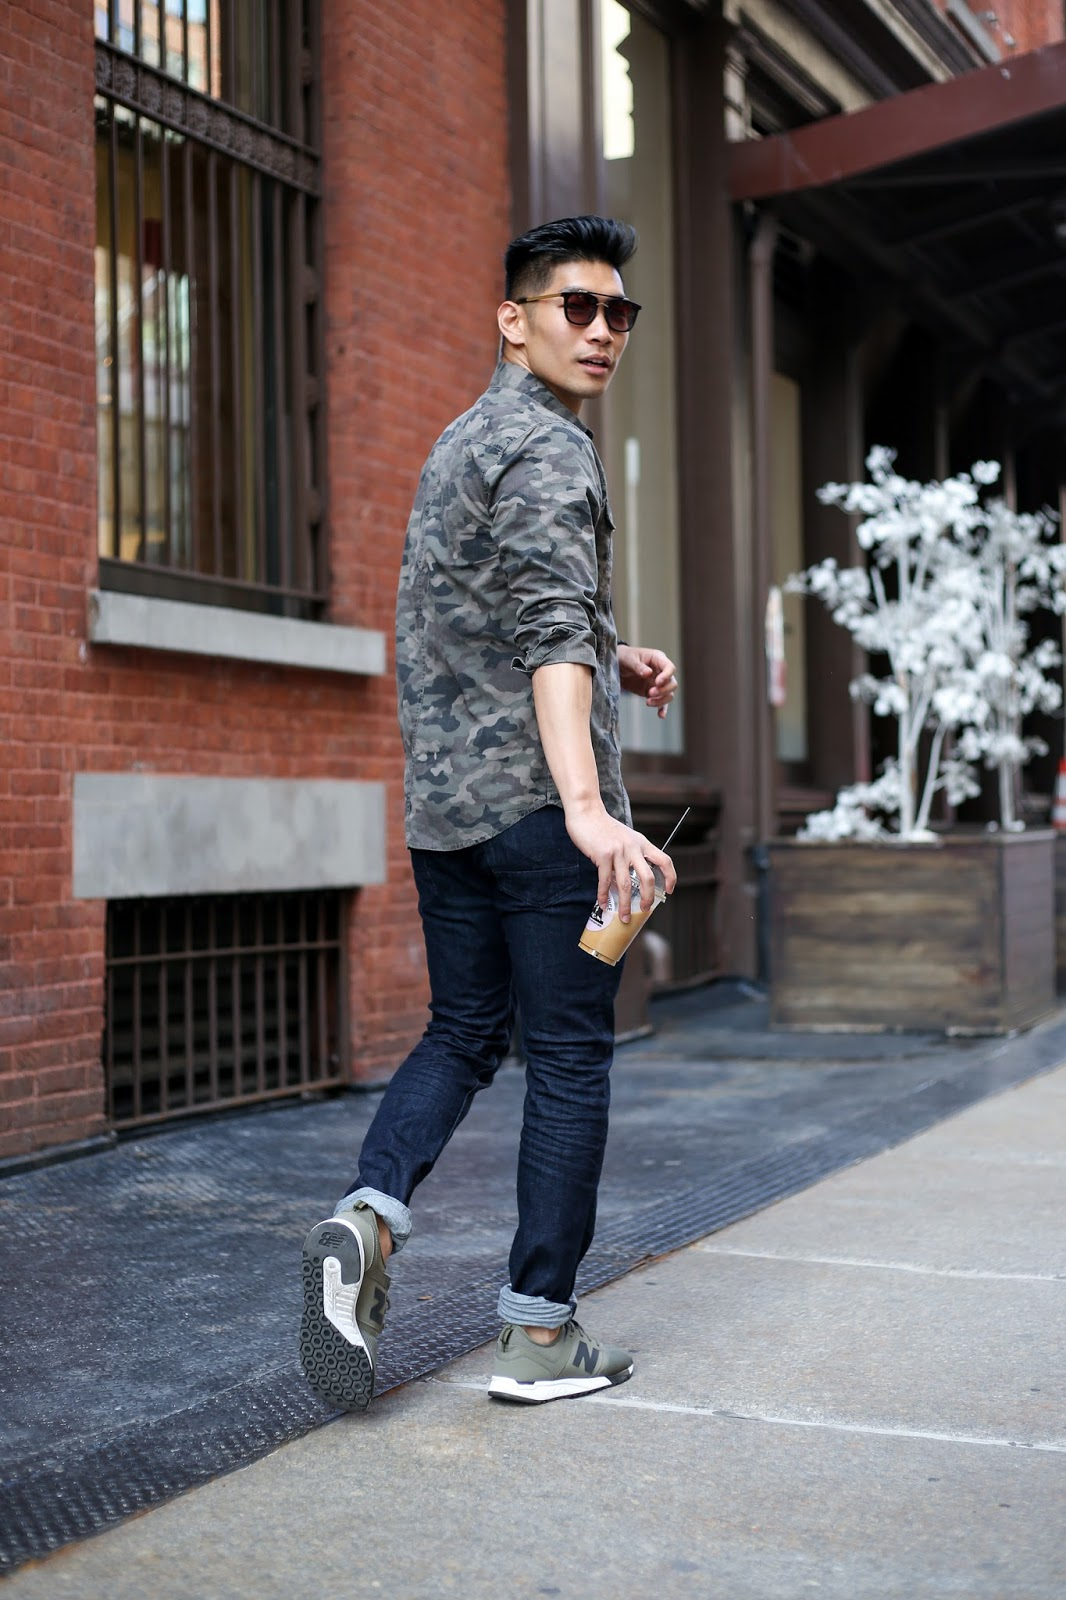 Leo Chan, Menswear Style wearing Hudson Jeans Denim Jeans and Camo Shirt